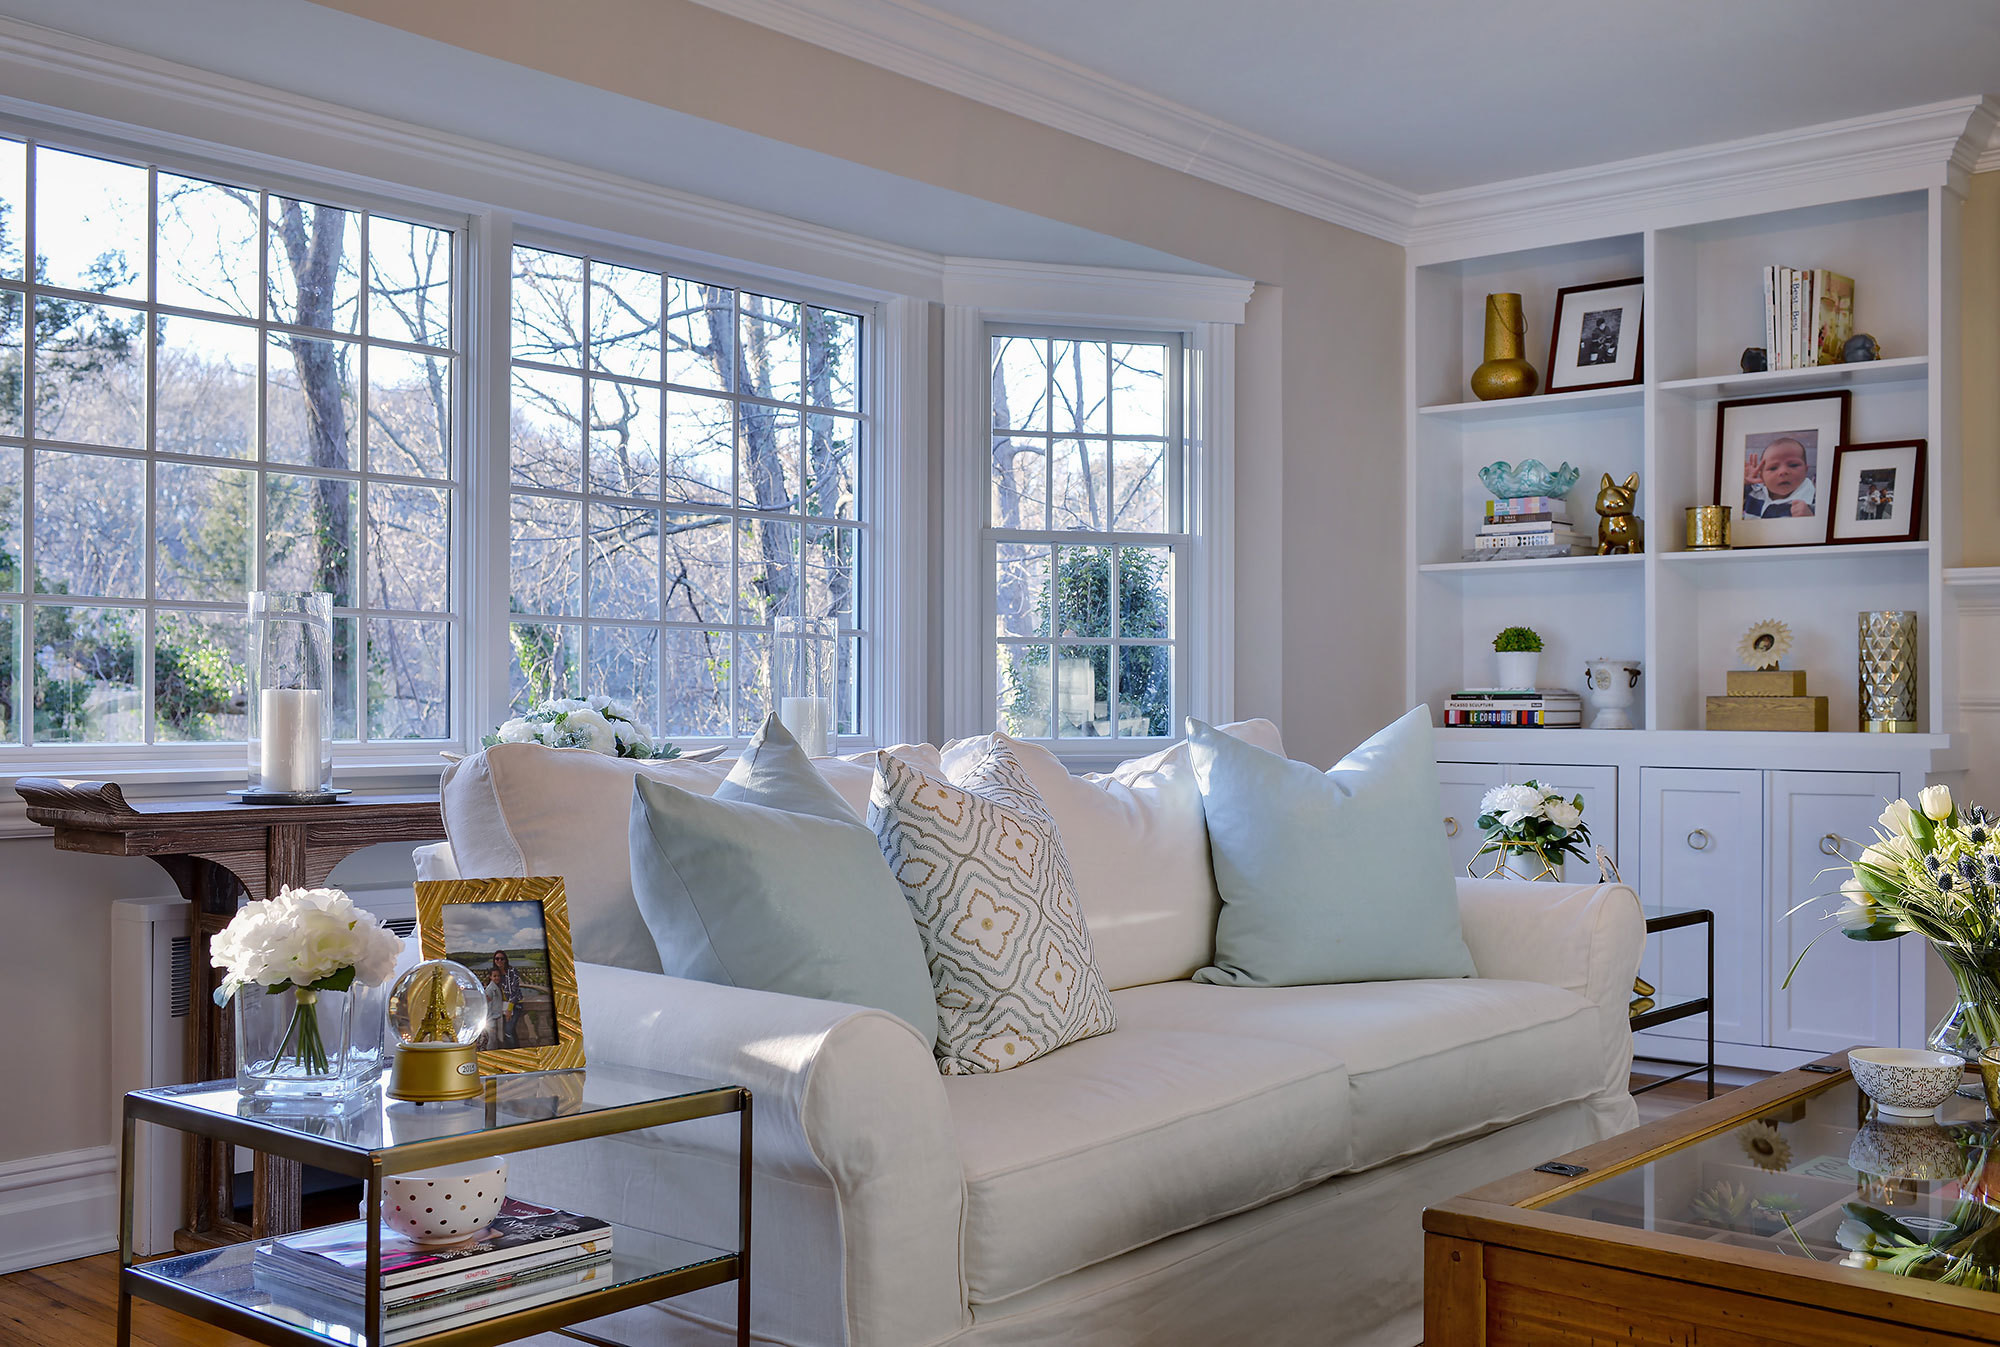 Sun-filled windows drench the main living space with natural light, highlighting the room's built-in bookshelves and plush seating, while also providing verdant views of the home's expansive property.